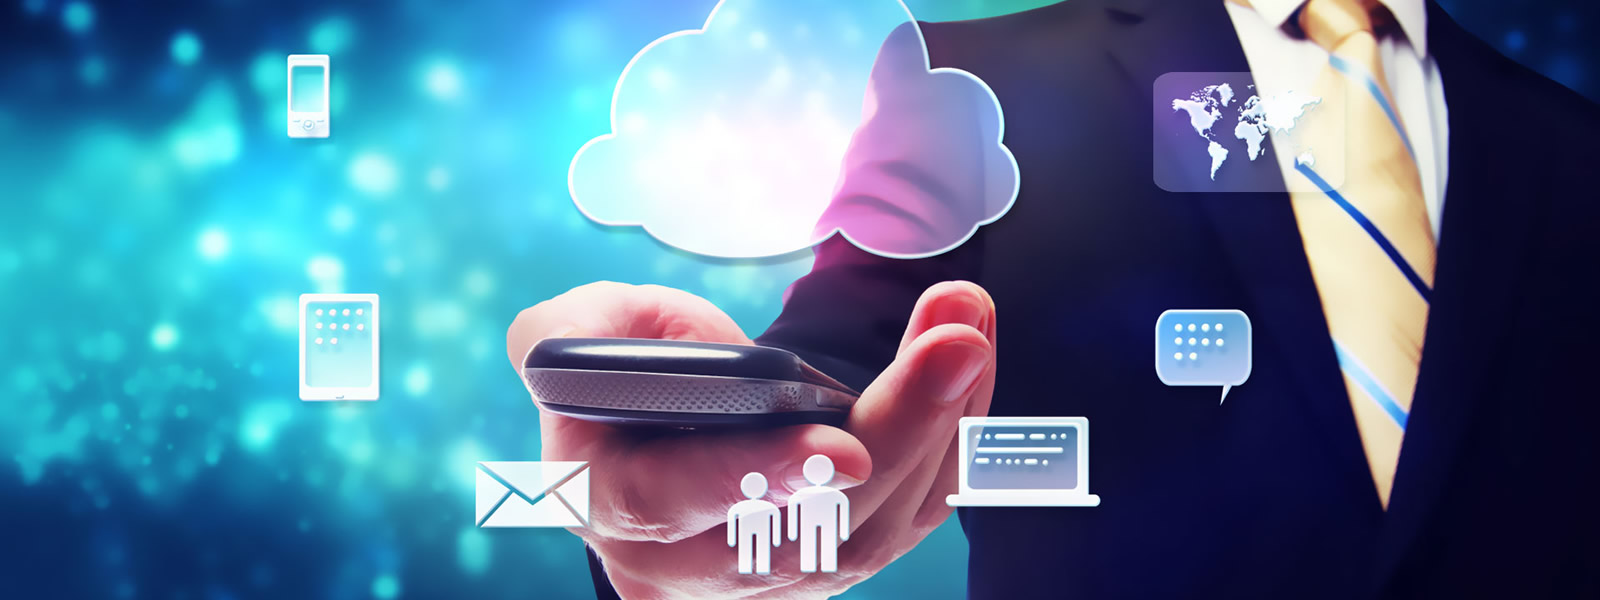 Using advanced VOIP solutions, we will provide you an International Presence for your Business